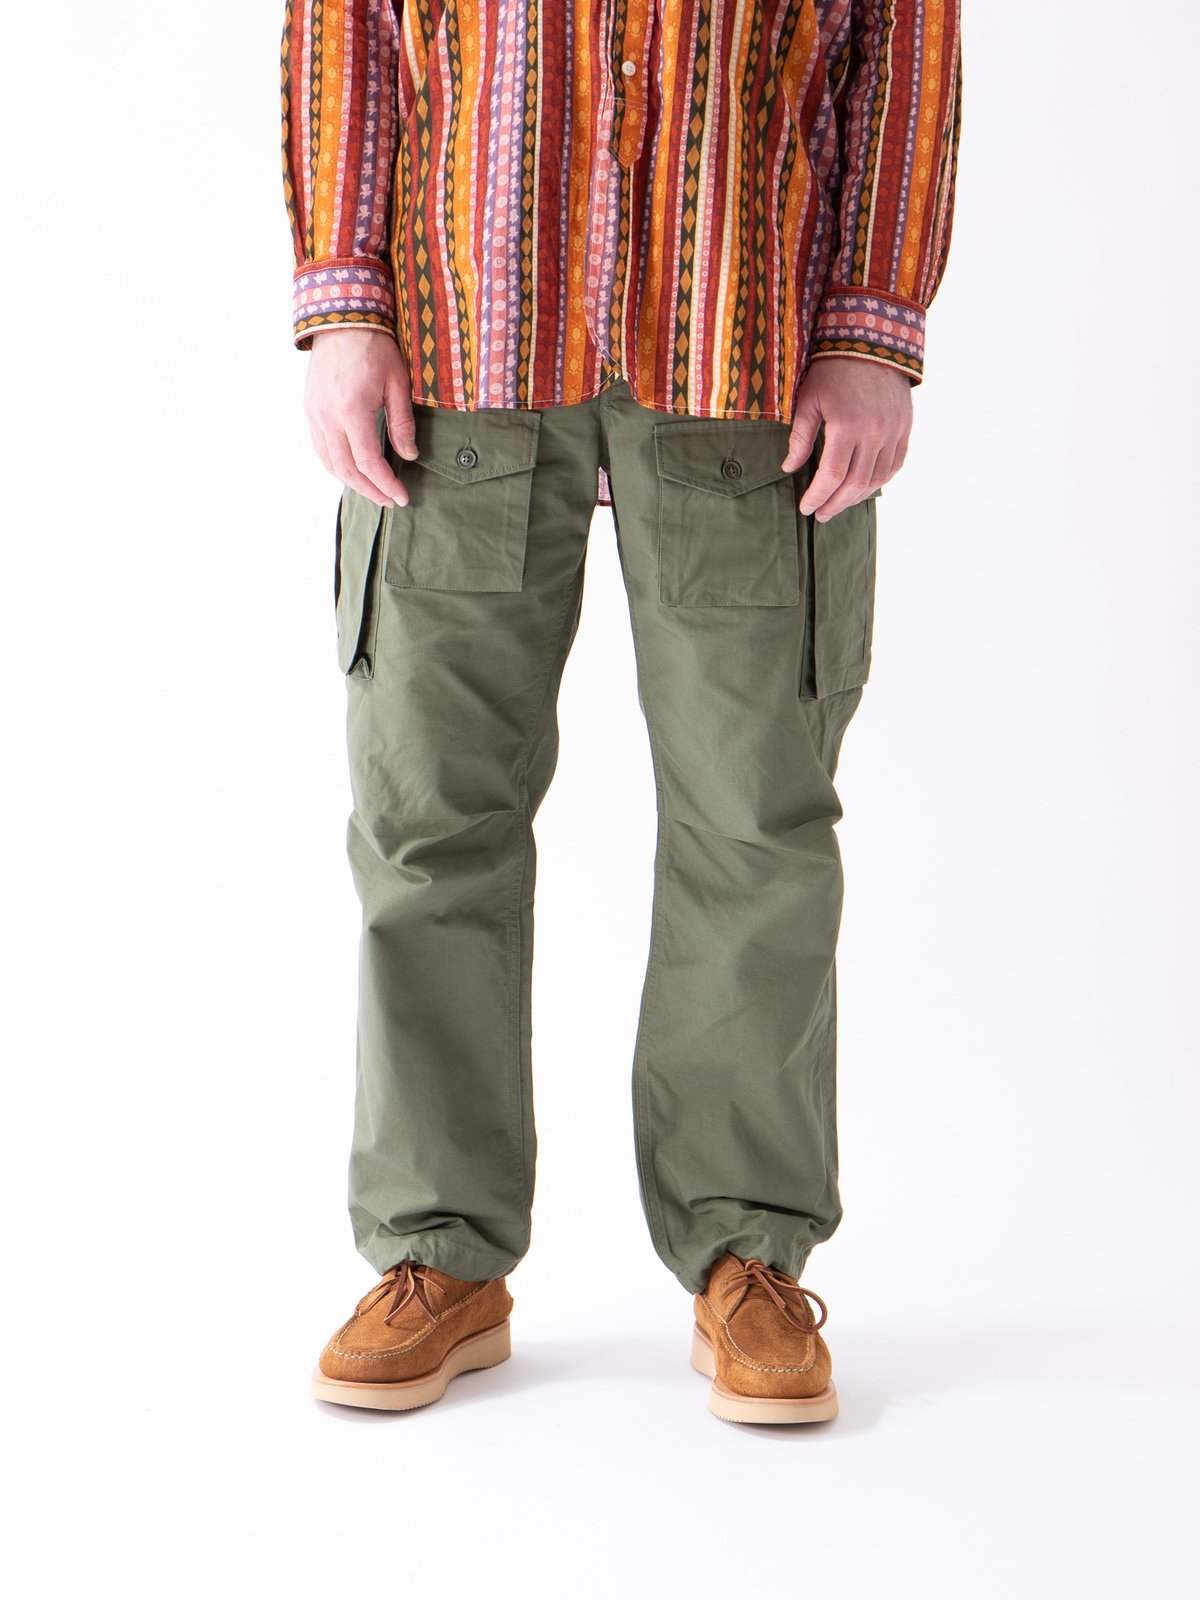 Olive Cotton Ripstop FA Pant - Image 2